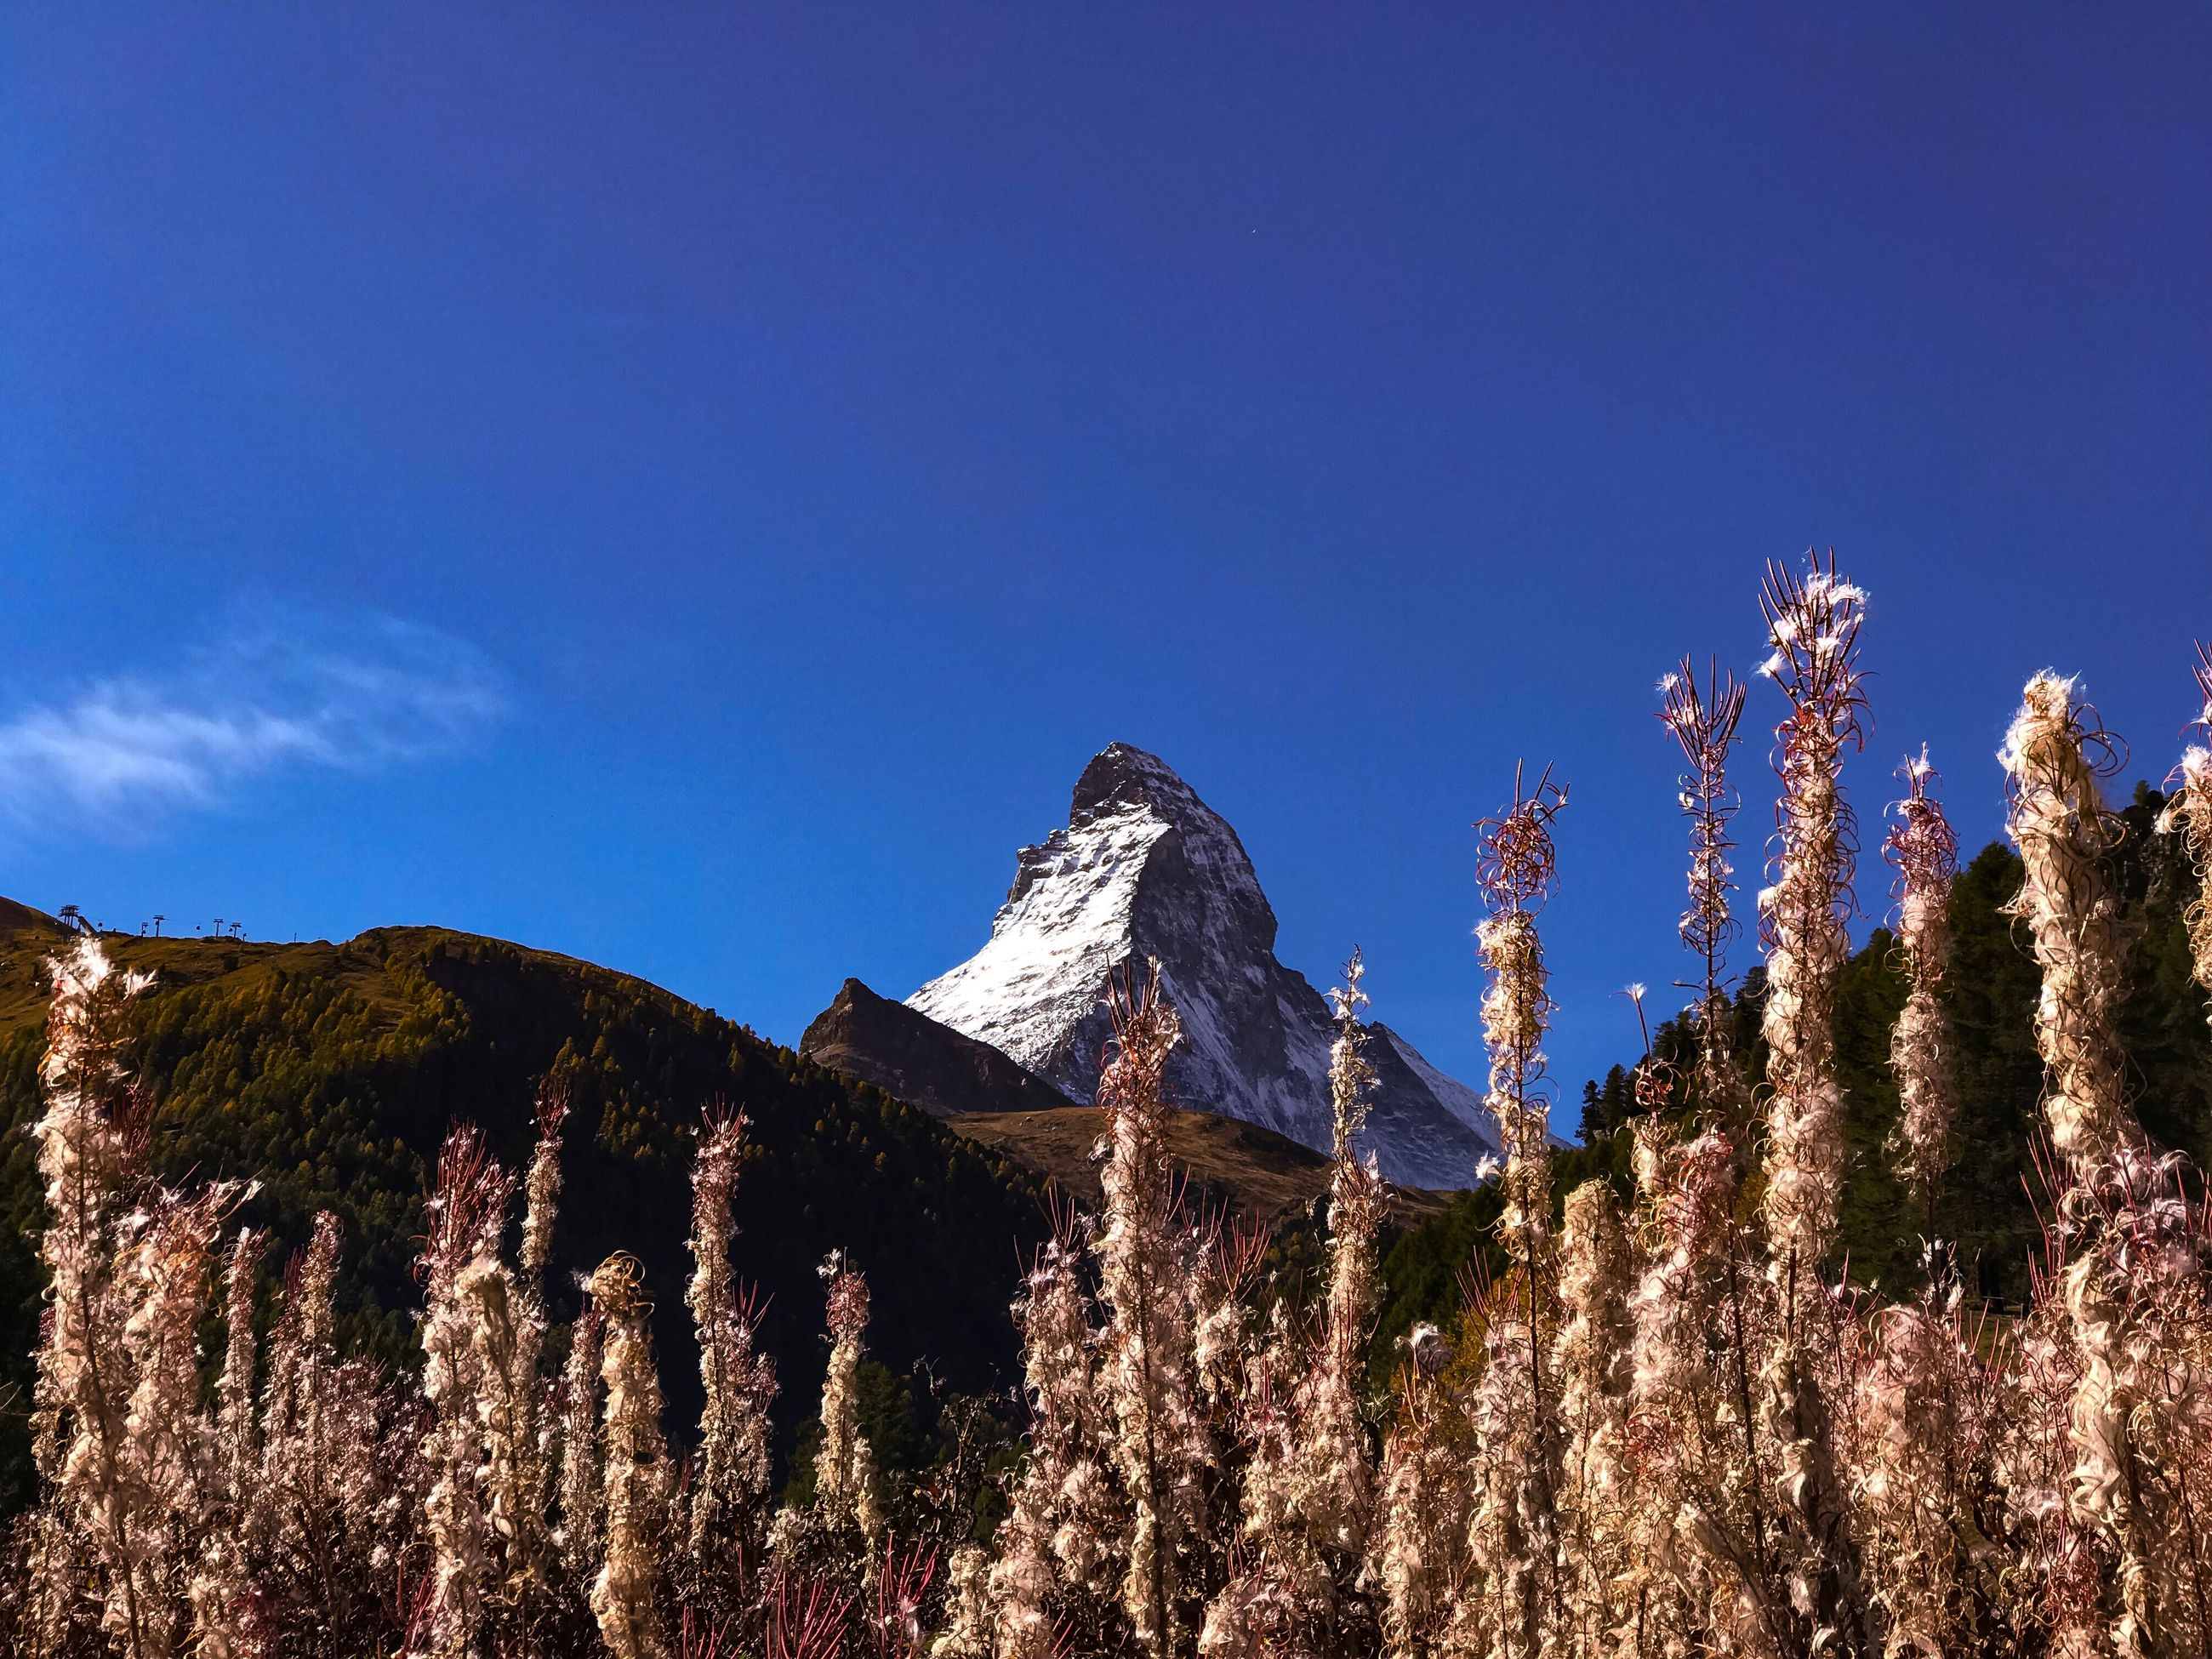 mountain, nature, beauty in nature, scenics, tree, no people, tranquility, tranquil scene, growth, day, plant, outdoors, clear sky, mountain range, blue, flower, snow, sky